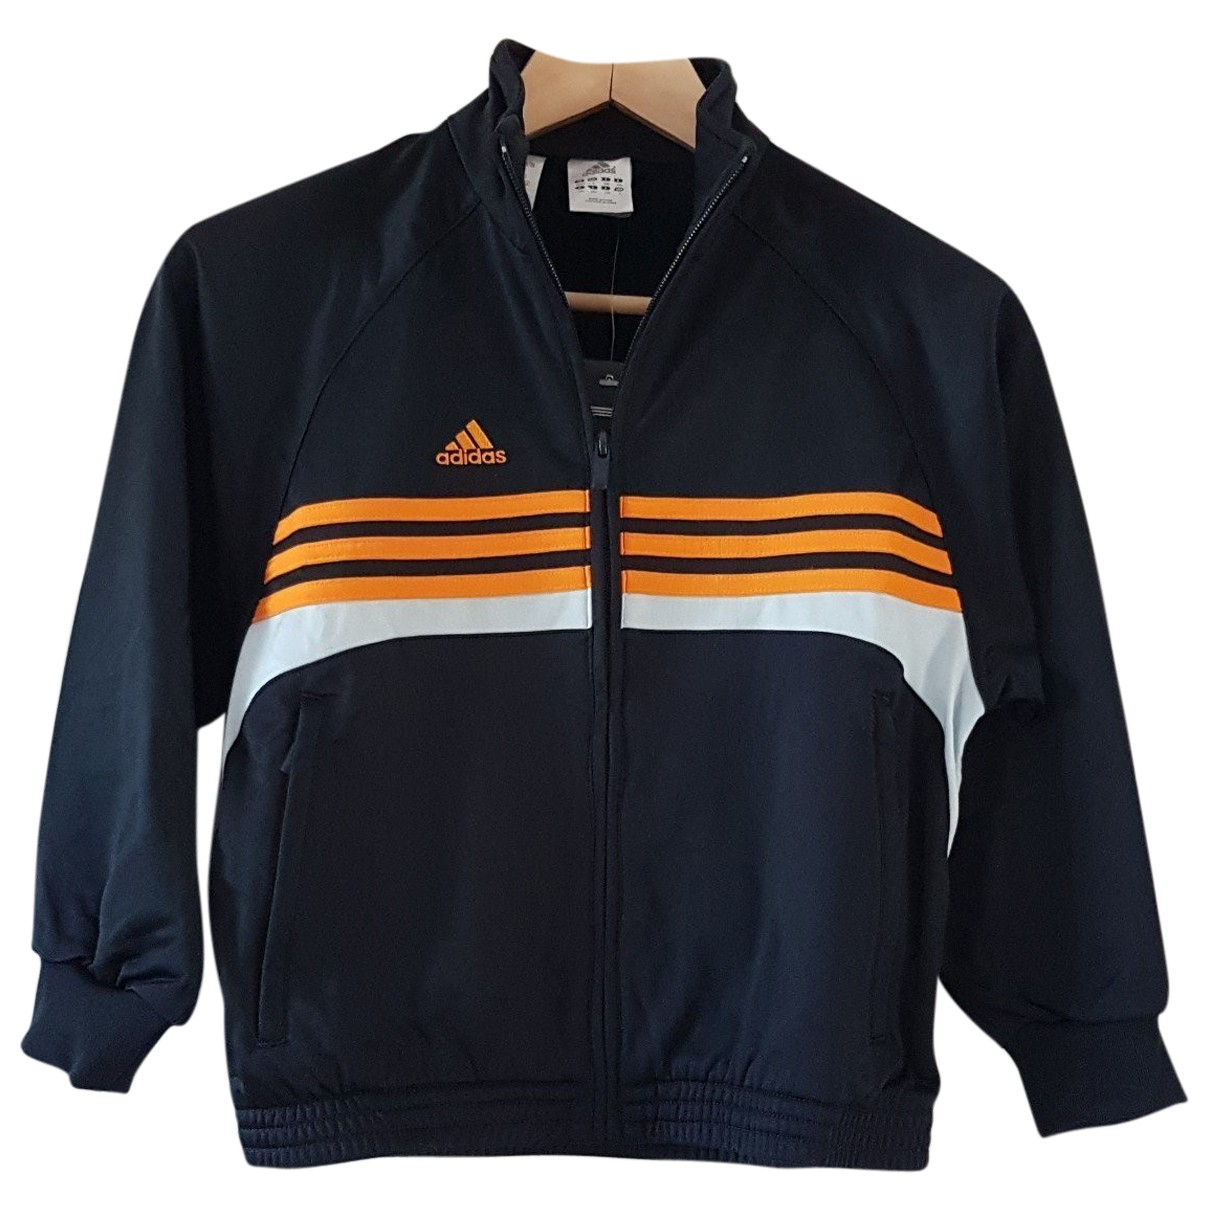 Adidas N Blue Outfits for Kids 6 years - until 45 inches UK